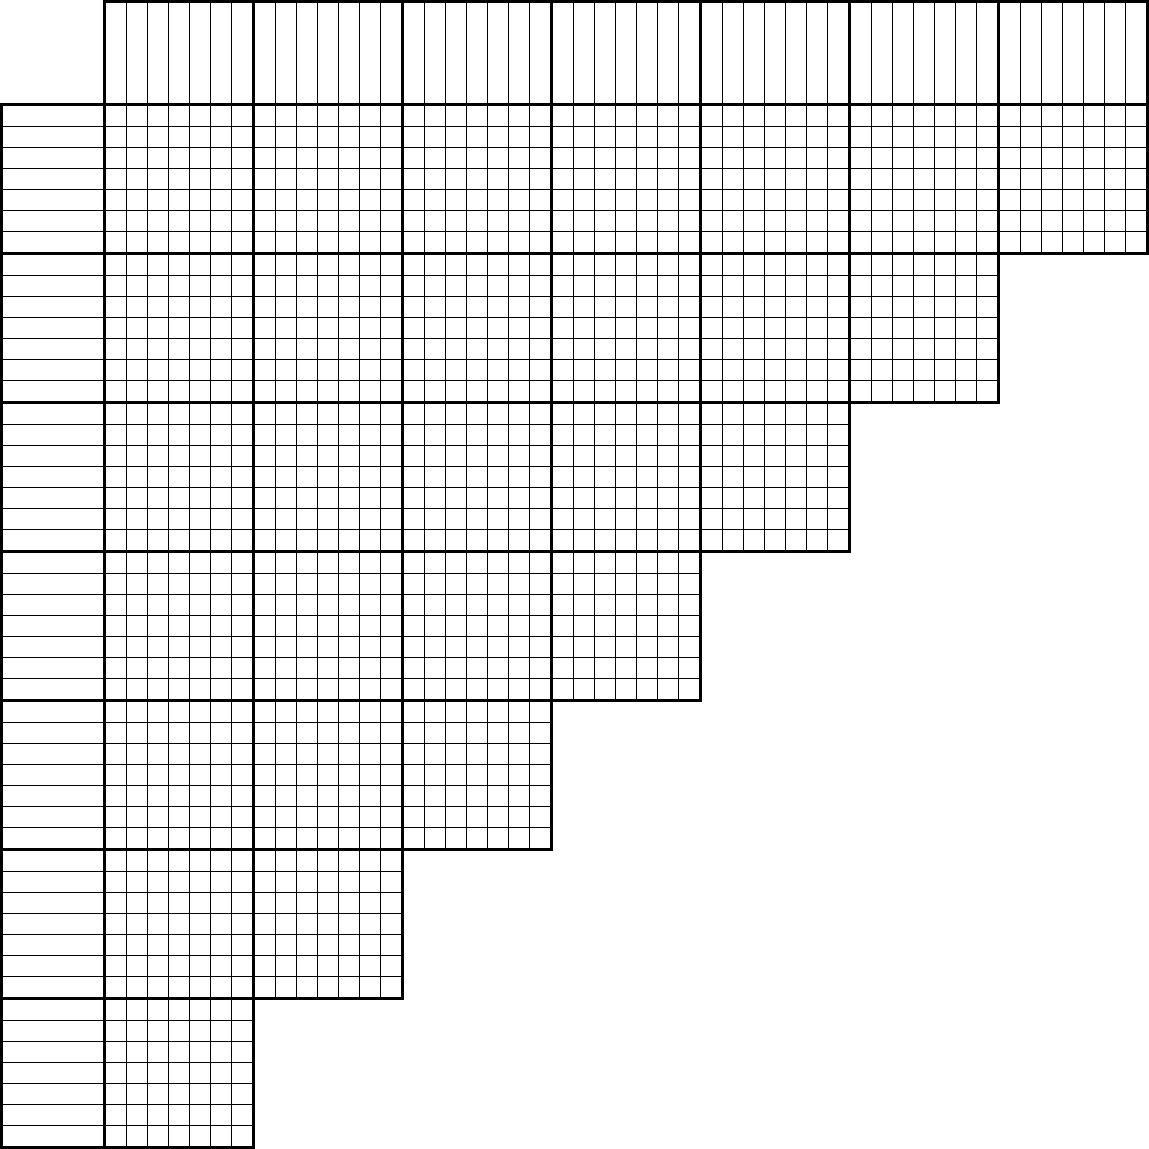 Tlstyer - Logic Puzzle Grids - Printable Logic Puzzles 4X6